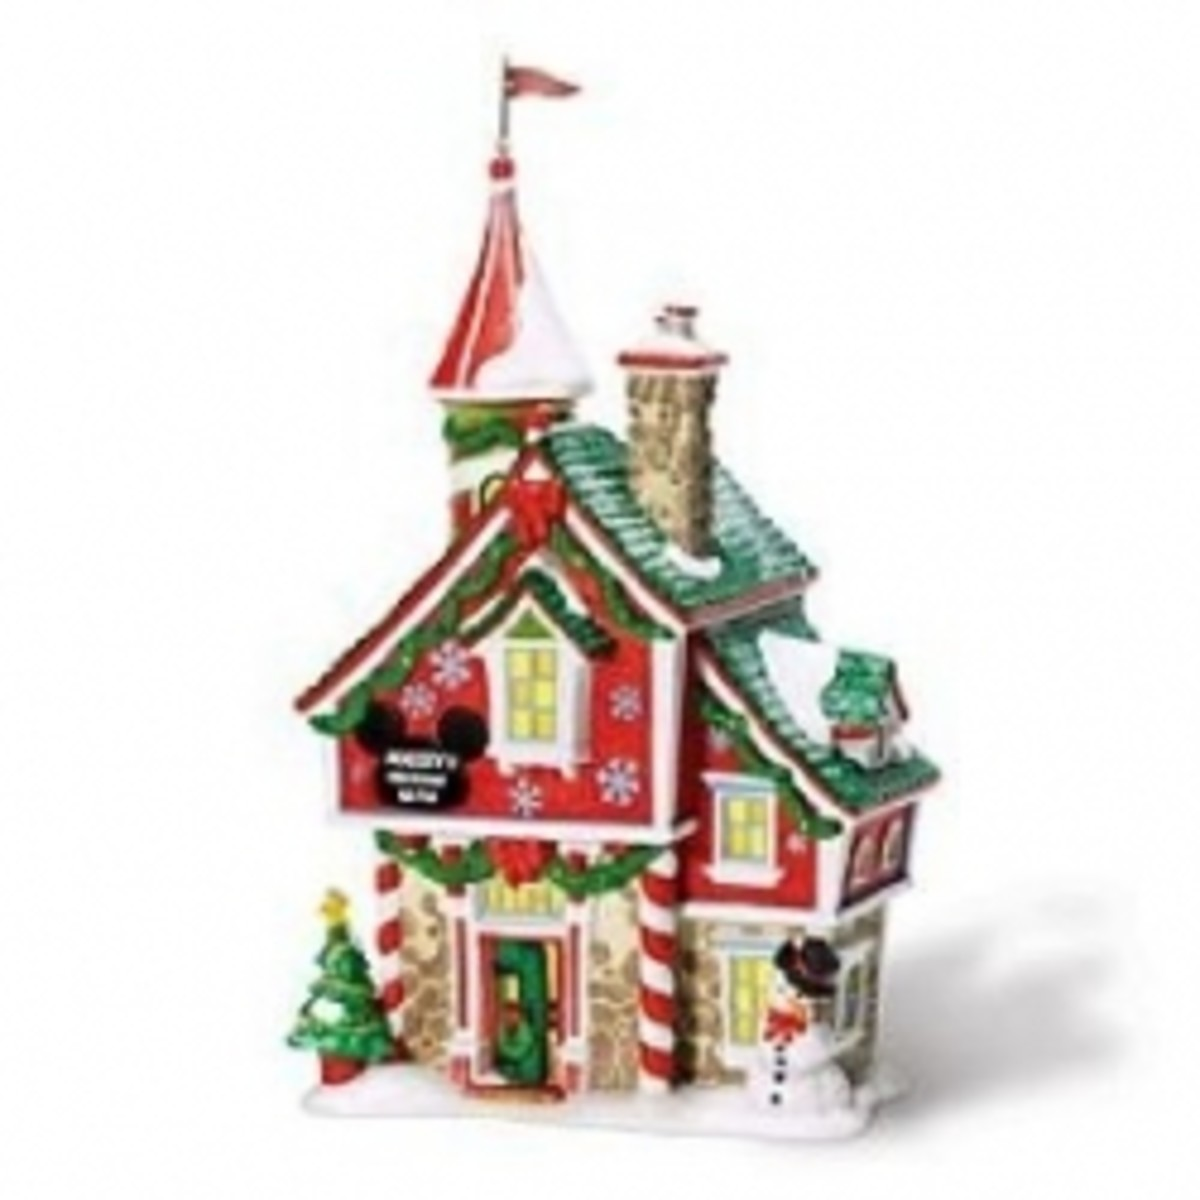 Build a Disney Christmas Village!